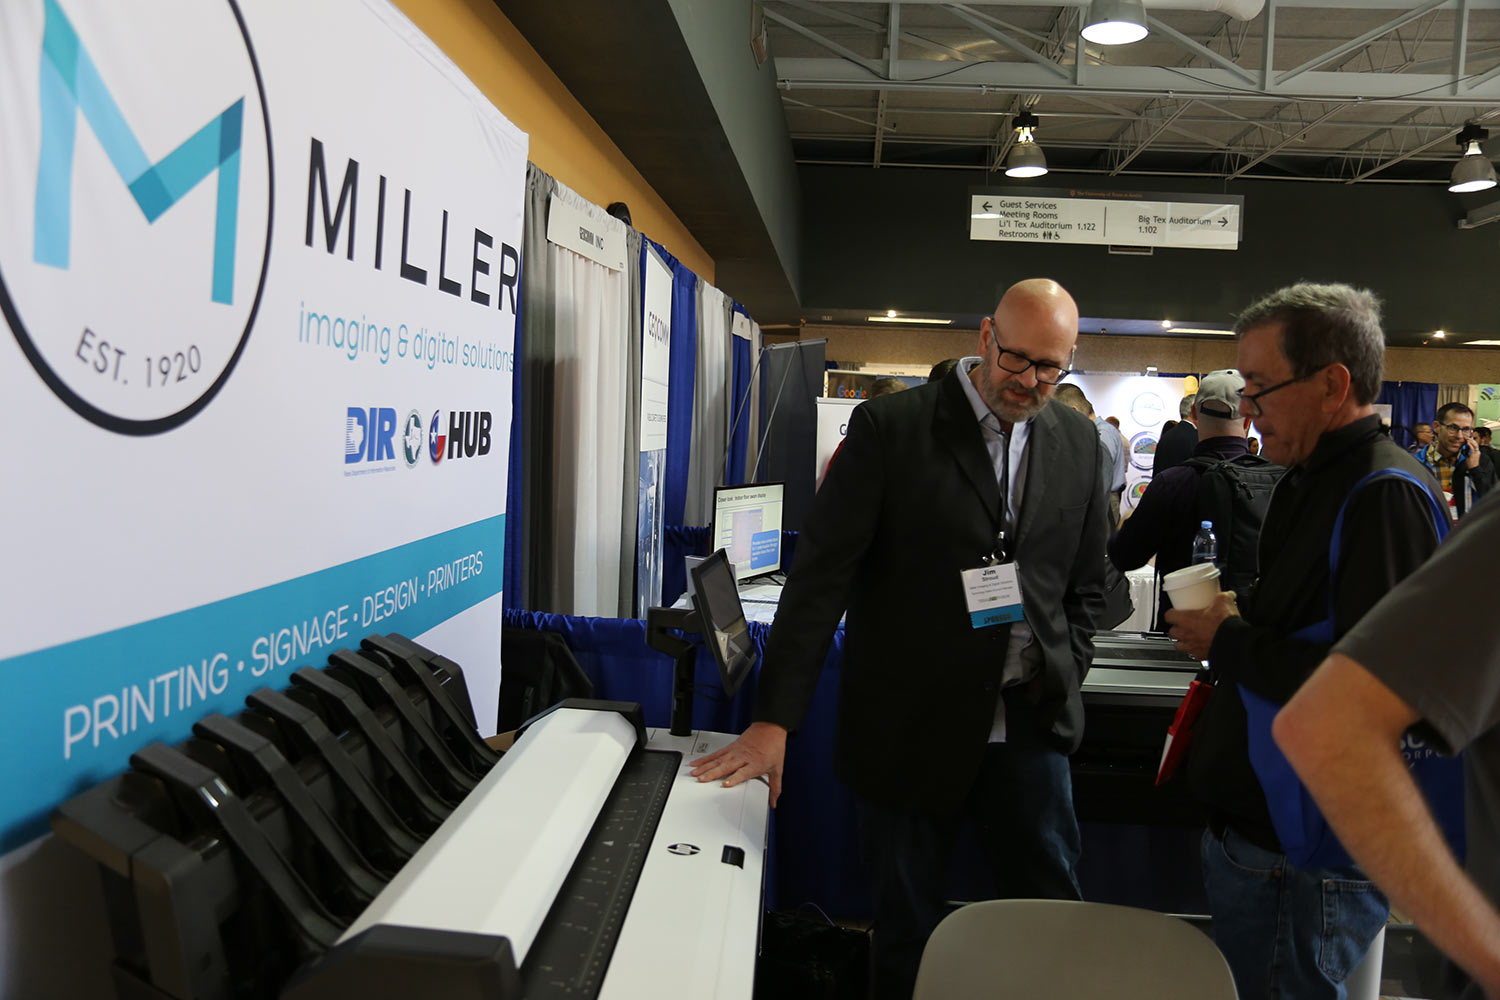 Miller booth